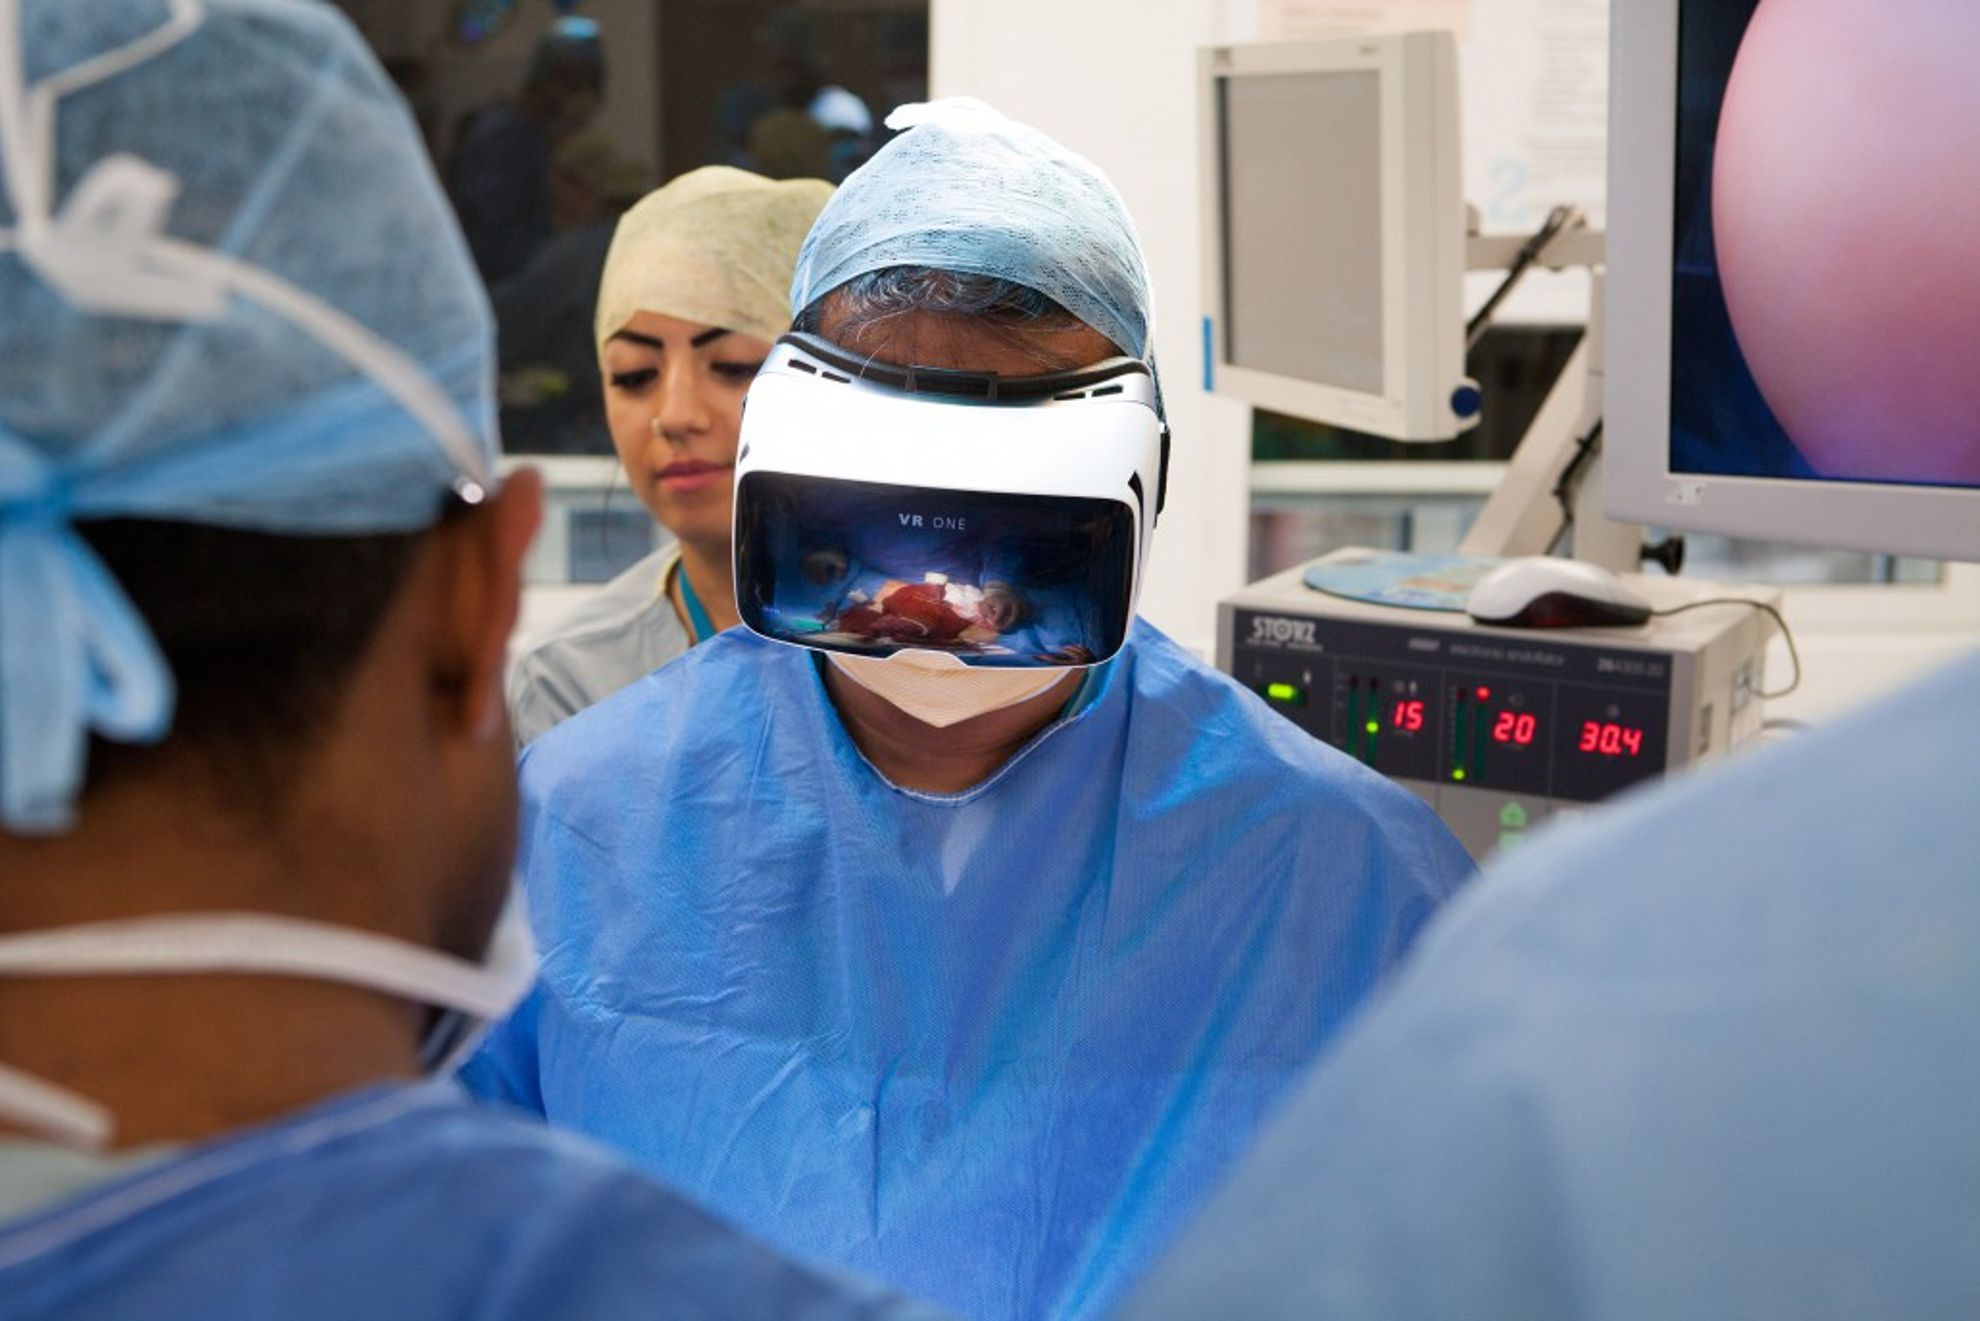 360-video-cancer-surgery